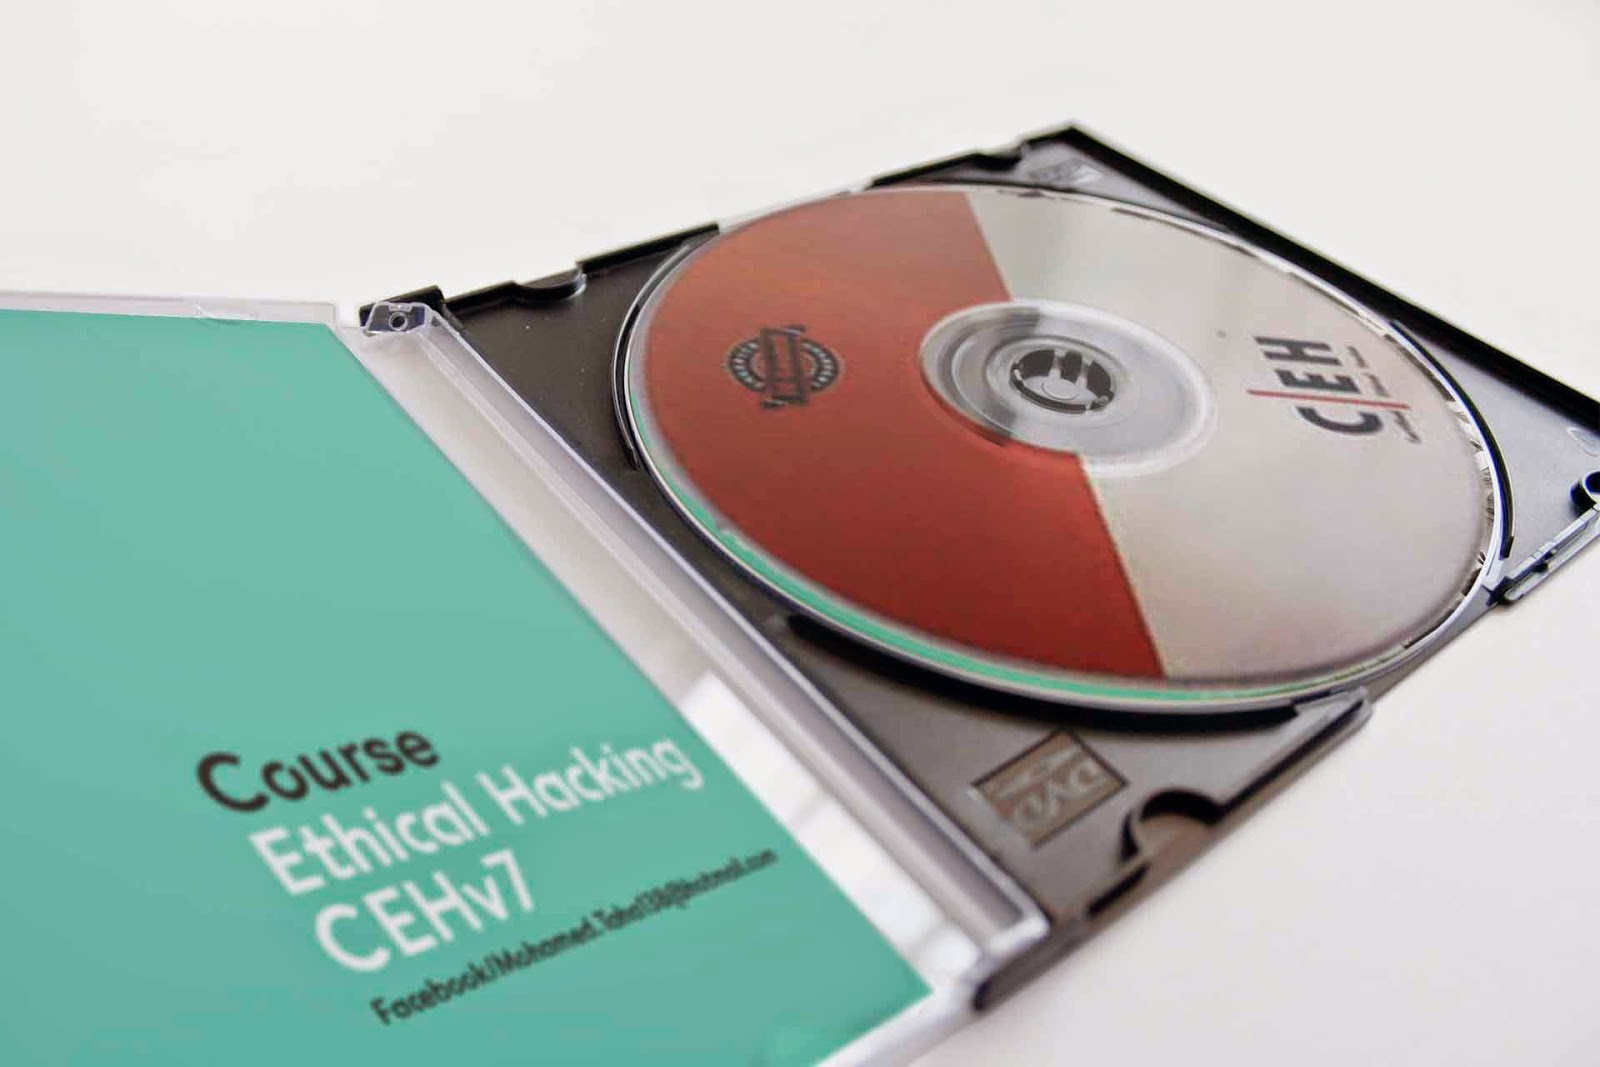 Ethical Hacking CEHv7